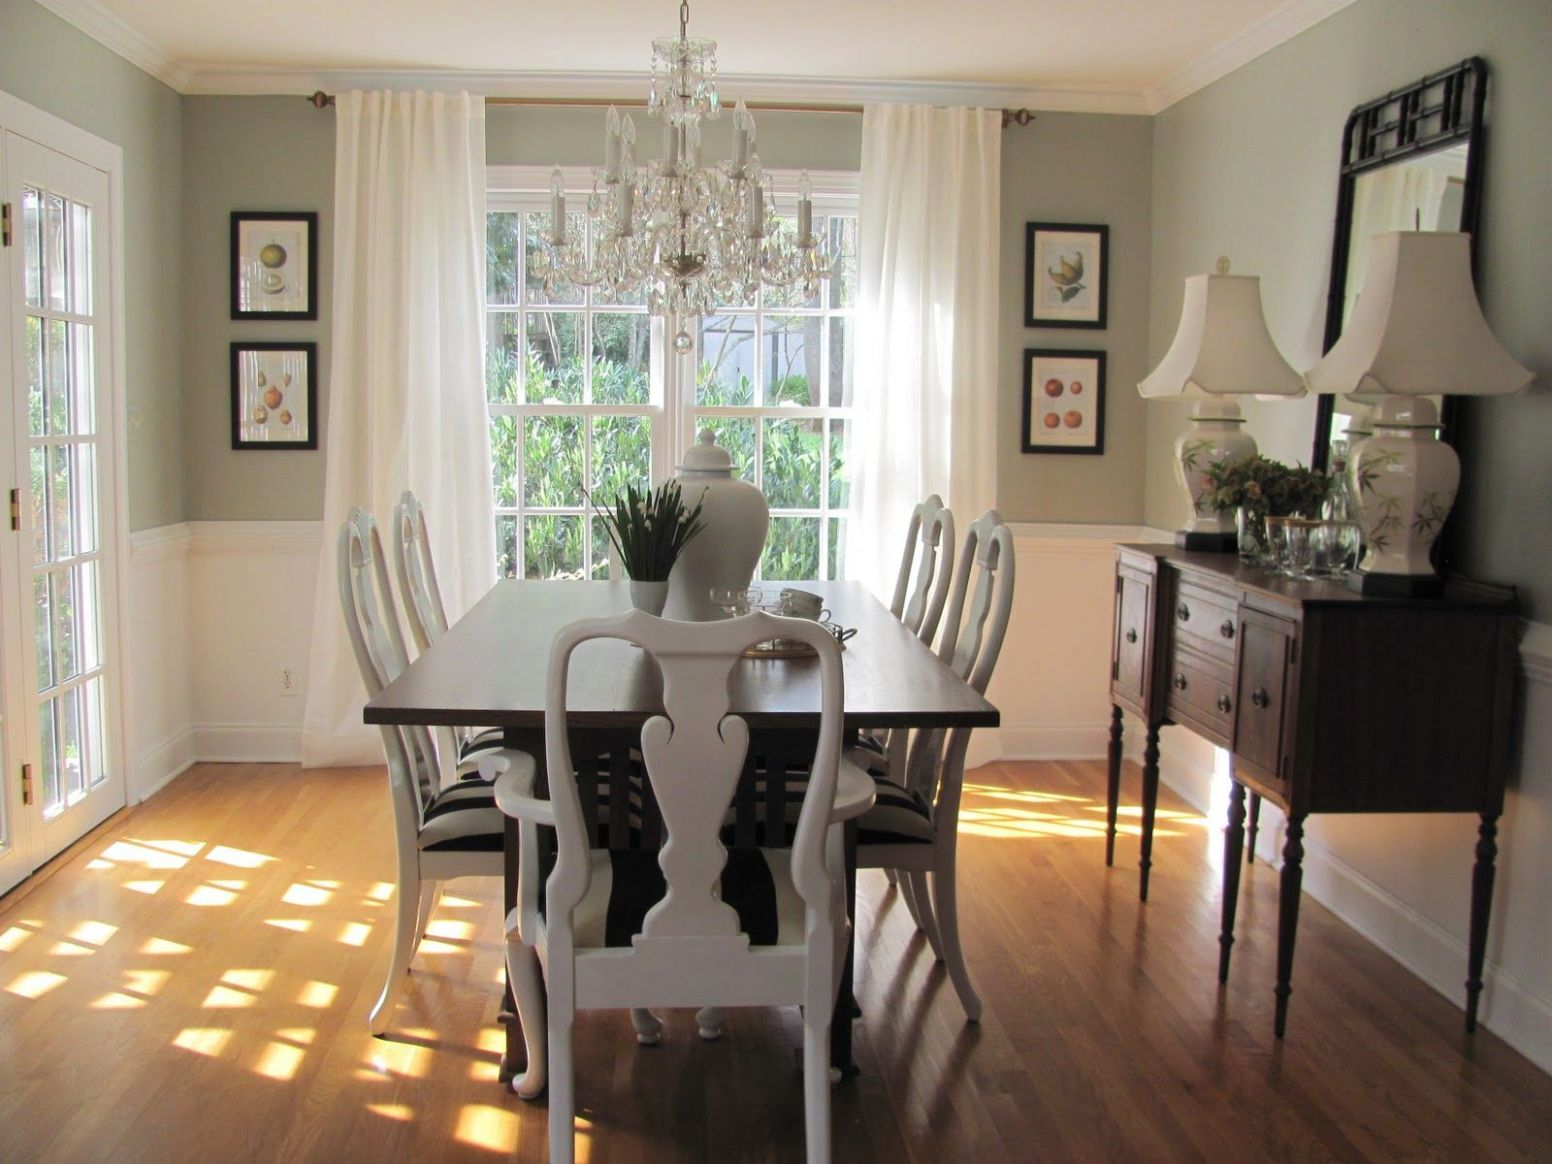 Spruce up Dining Room with some fresh Paints | Dining room colors ...